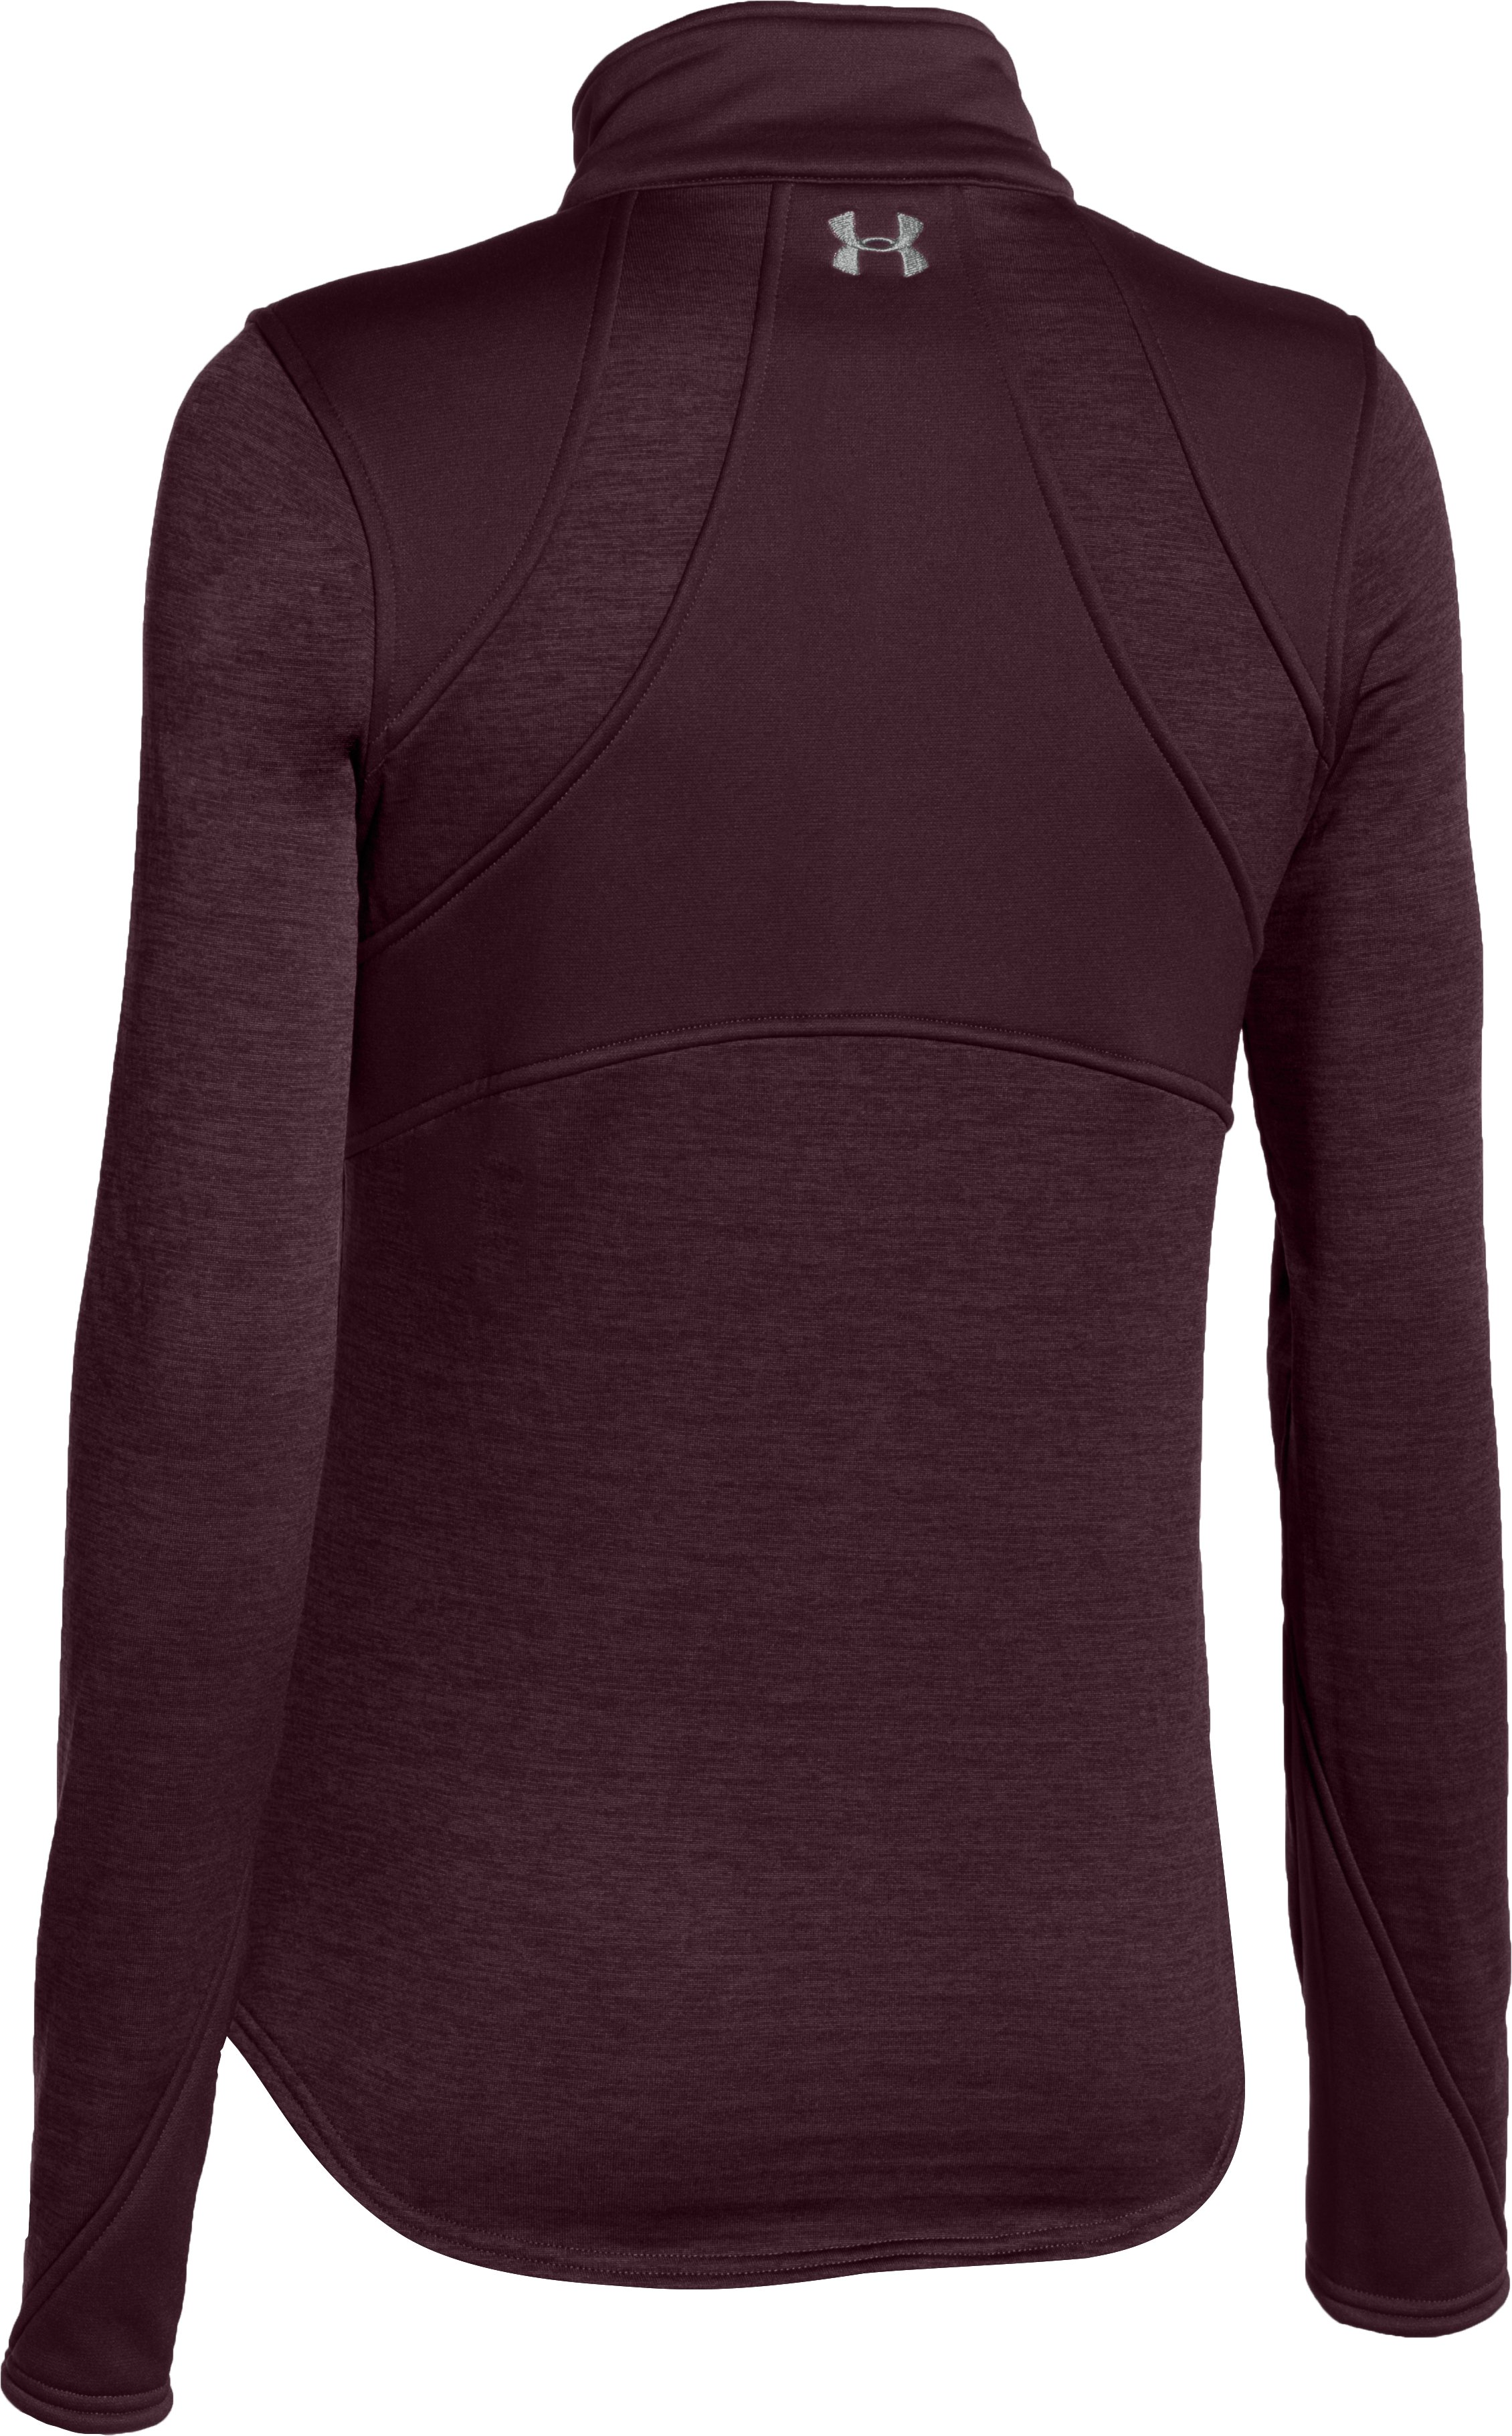 Women's UA Gamut ¼ Zip, Ox Blood, undefined